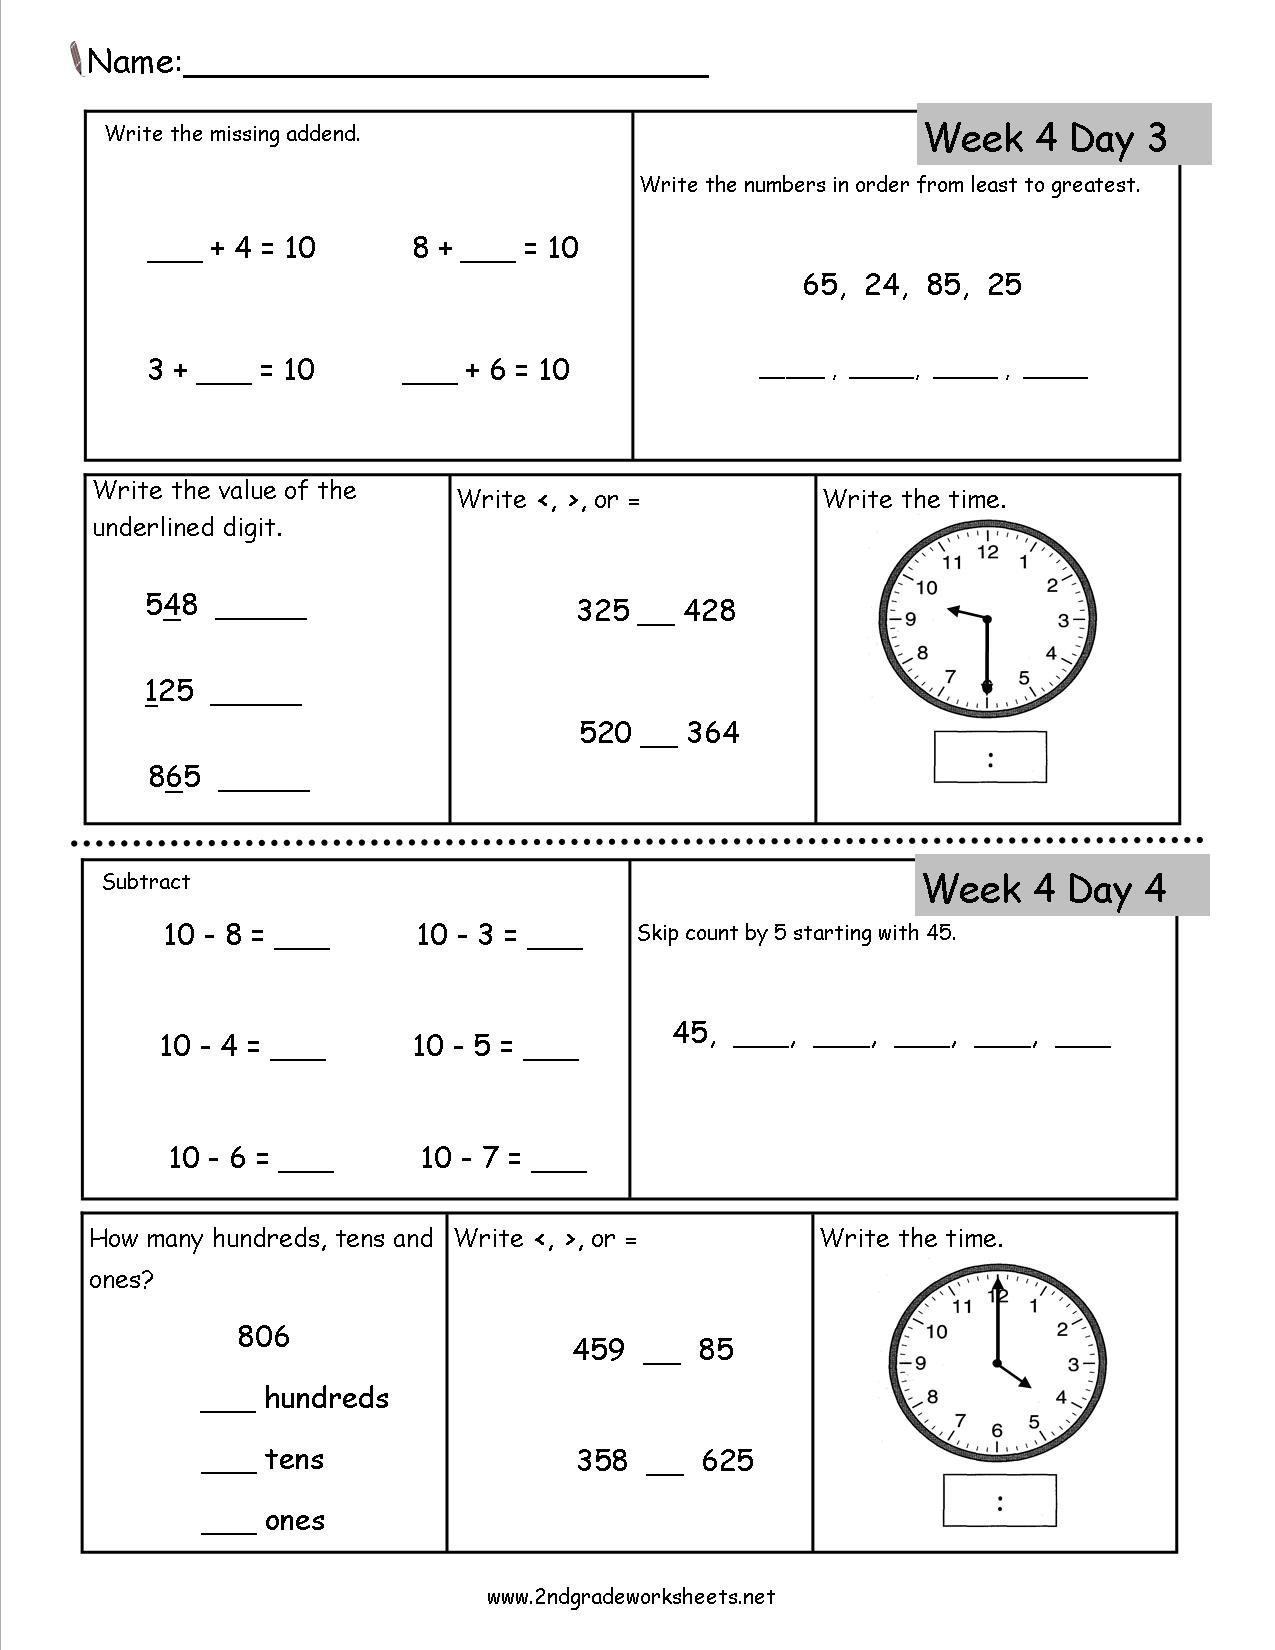 2Nd Grade Daily Math Worksheets Also 3Rd Grade Math Review Worksheets